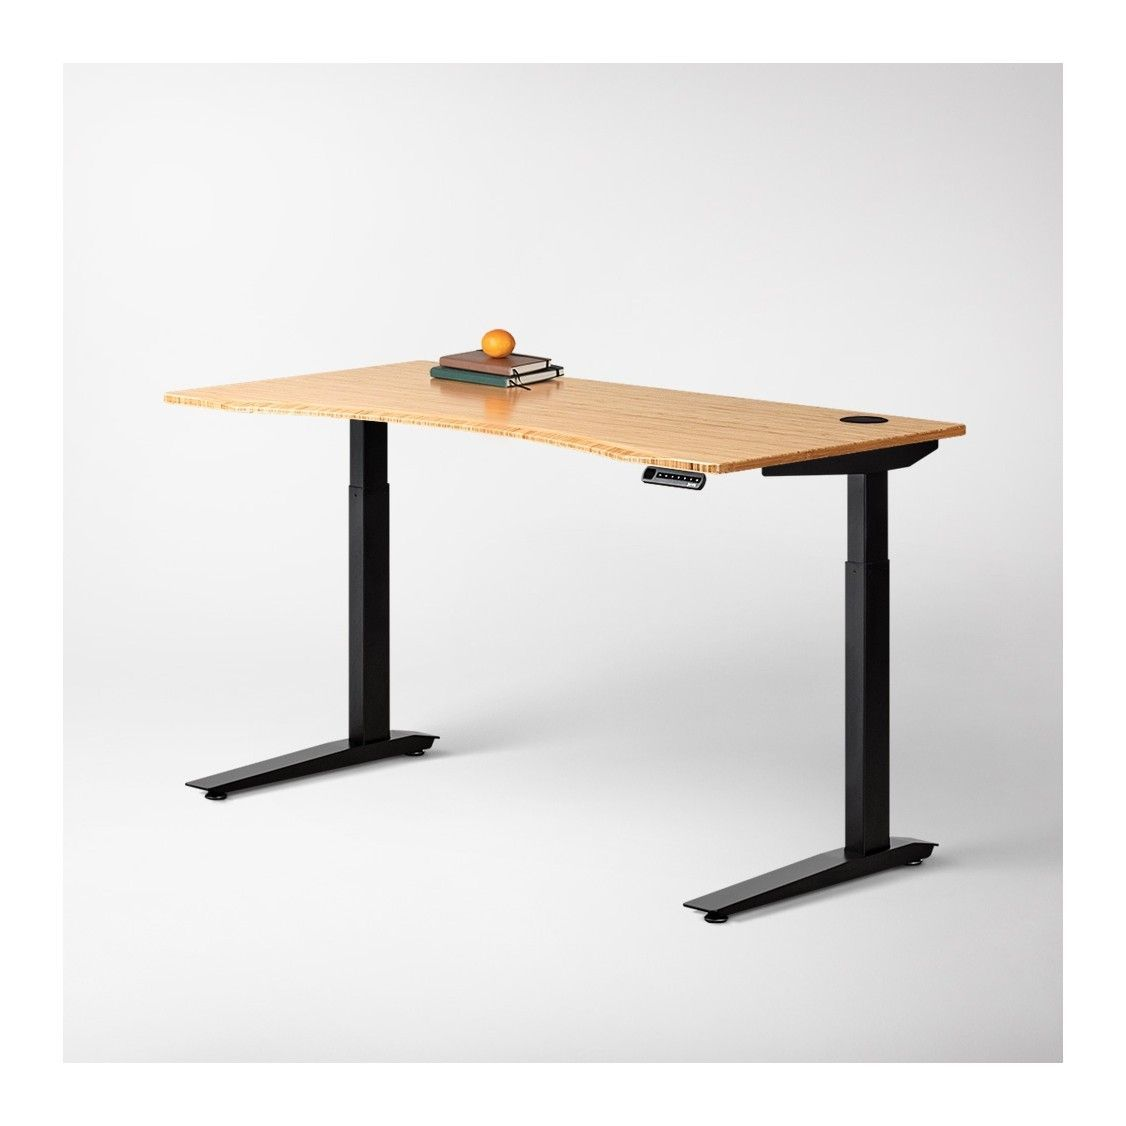 Jarvis bamboo adjustable standing desk in black officedesign